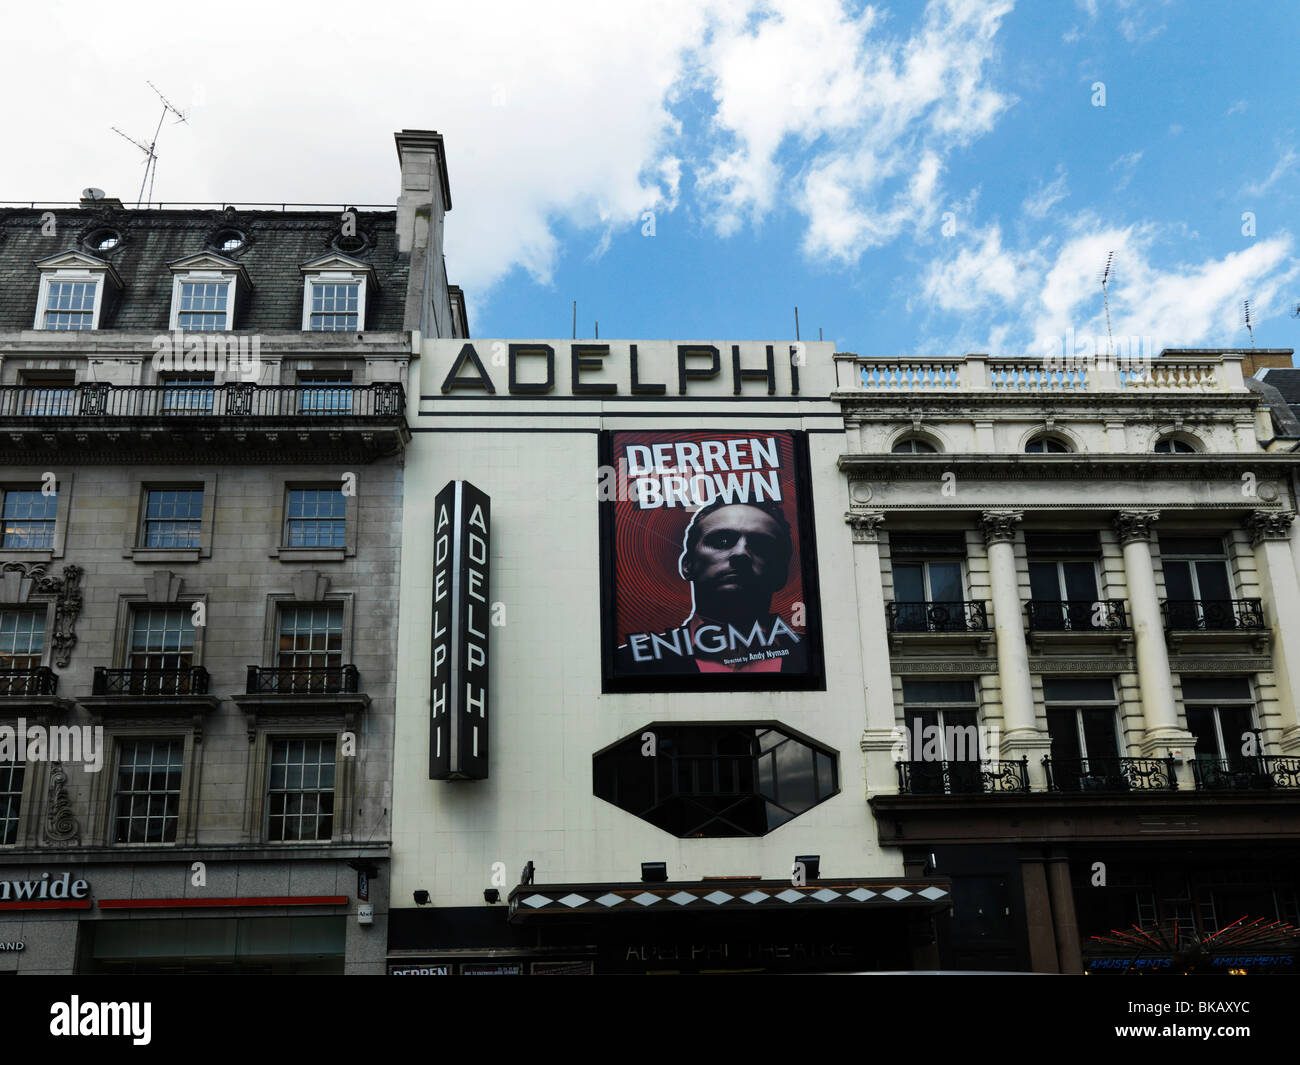 Poster Strand London England Strand Adelphi Theatre Poster Of Derren Brown